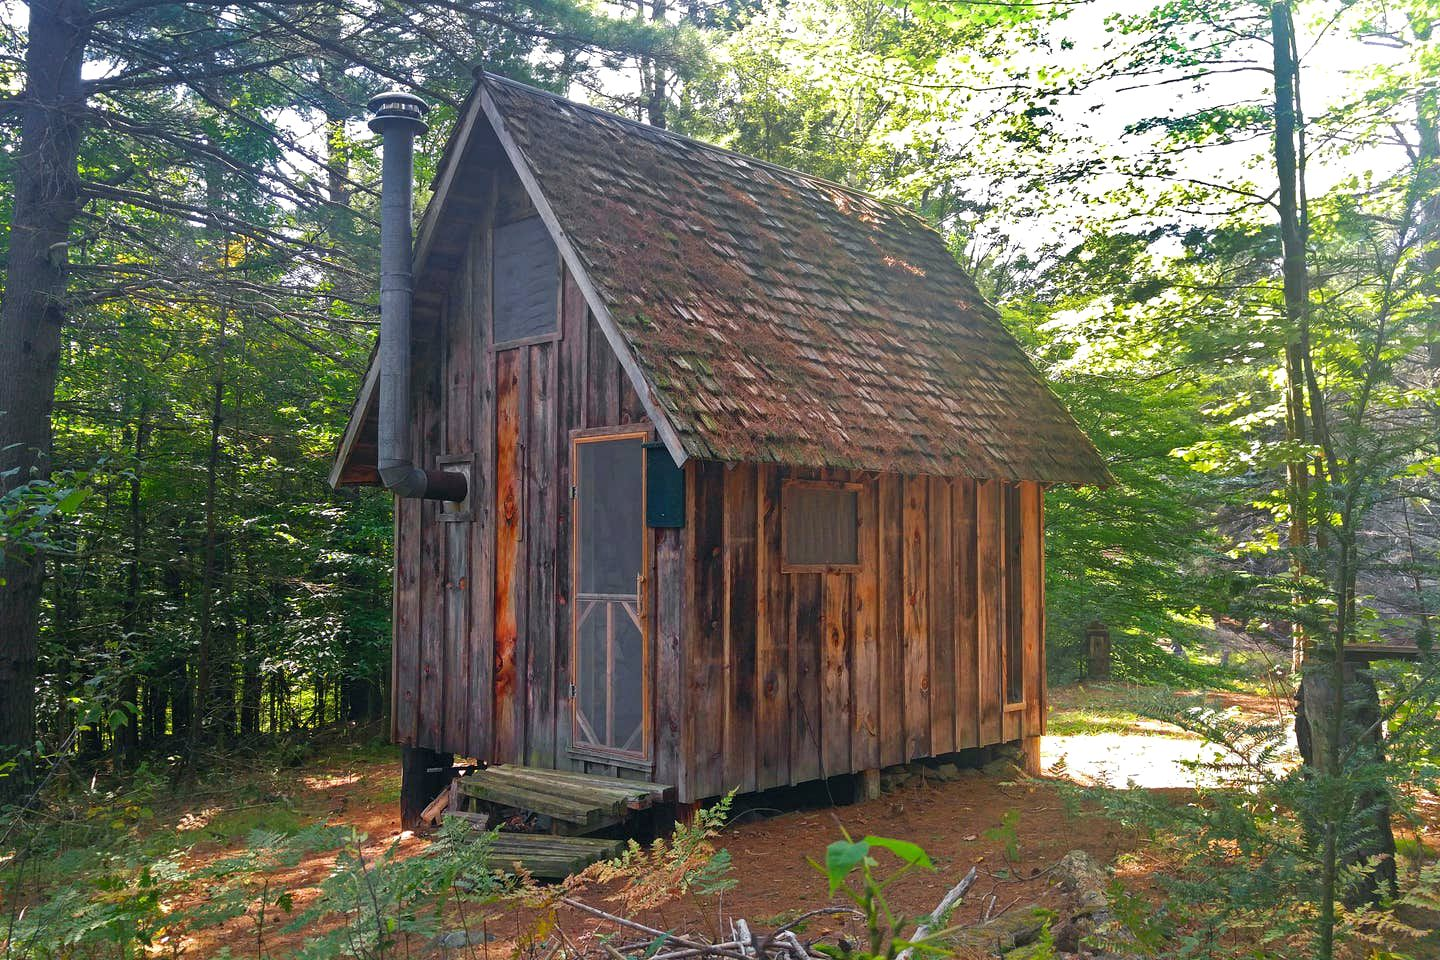 Tiny Houses (Riparius, New York, United States)